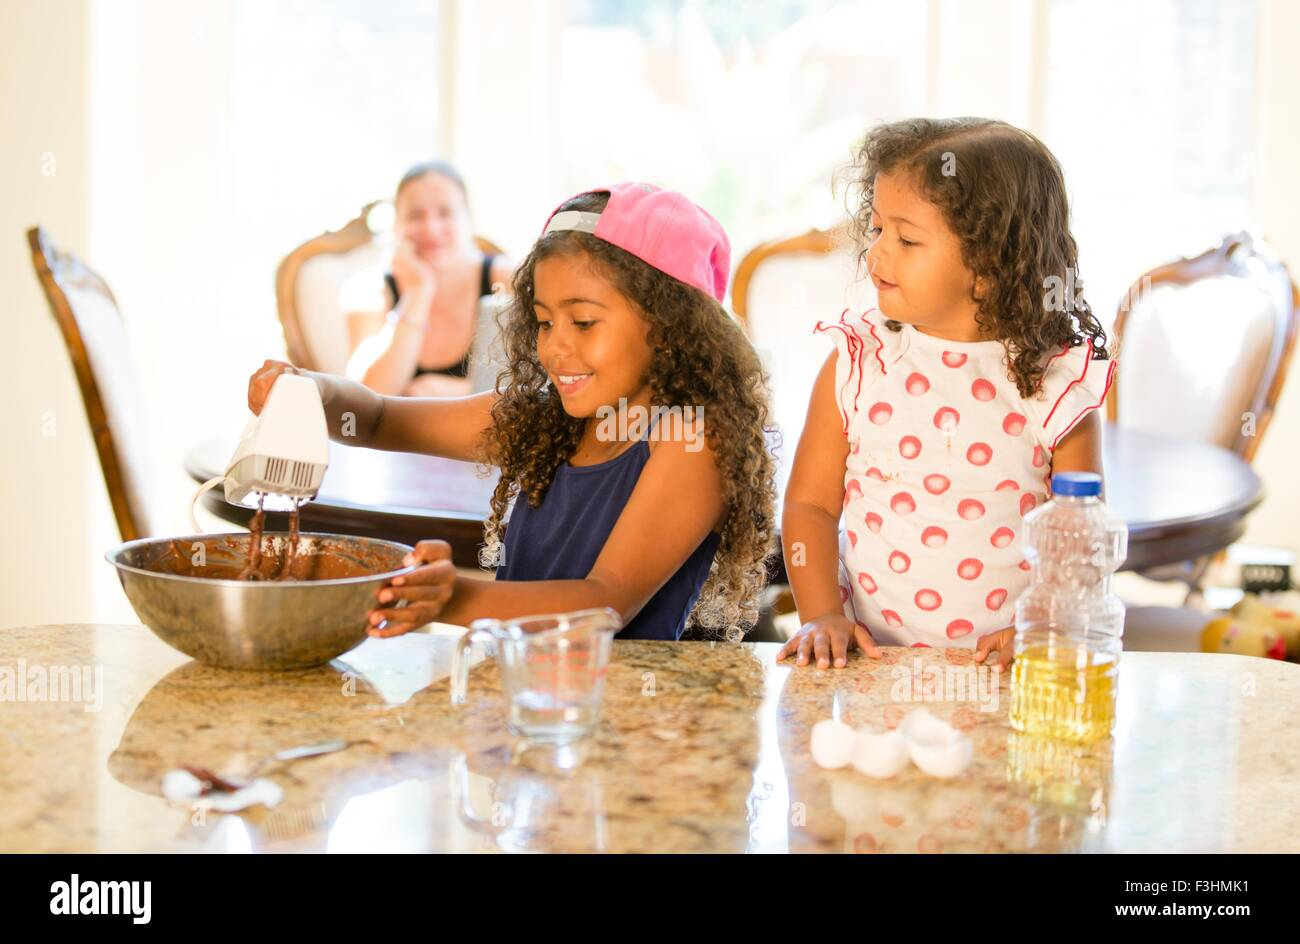 Sisters at kitchen counter whisking choclate cake mix in mixing bowl looking down smiling - Stock Image